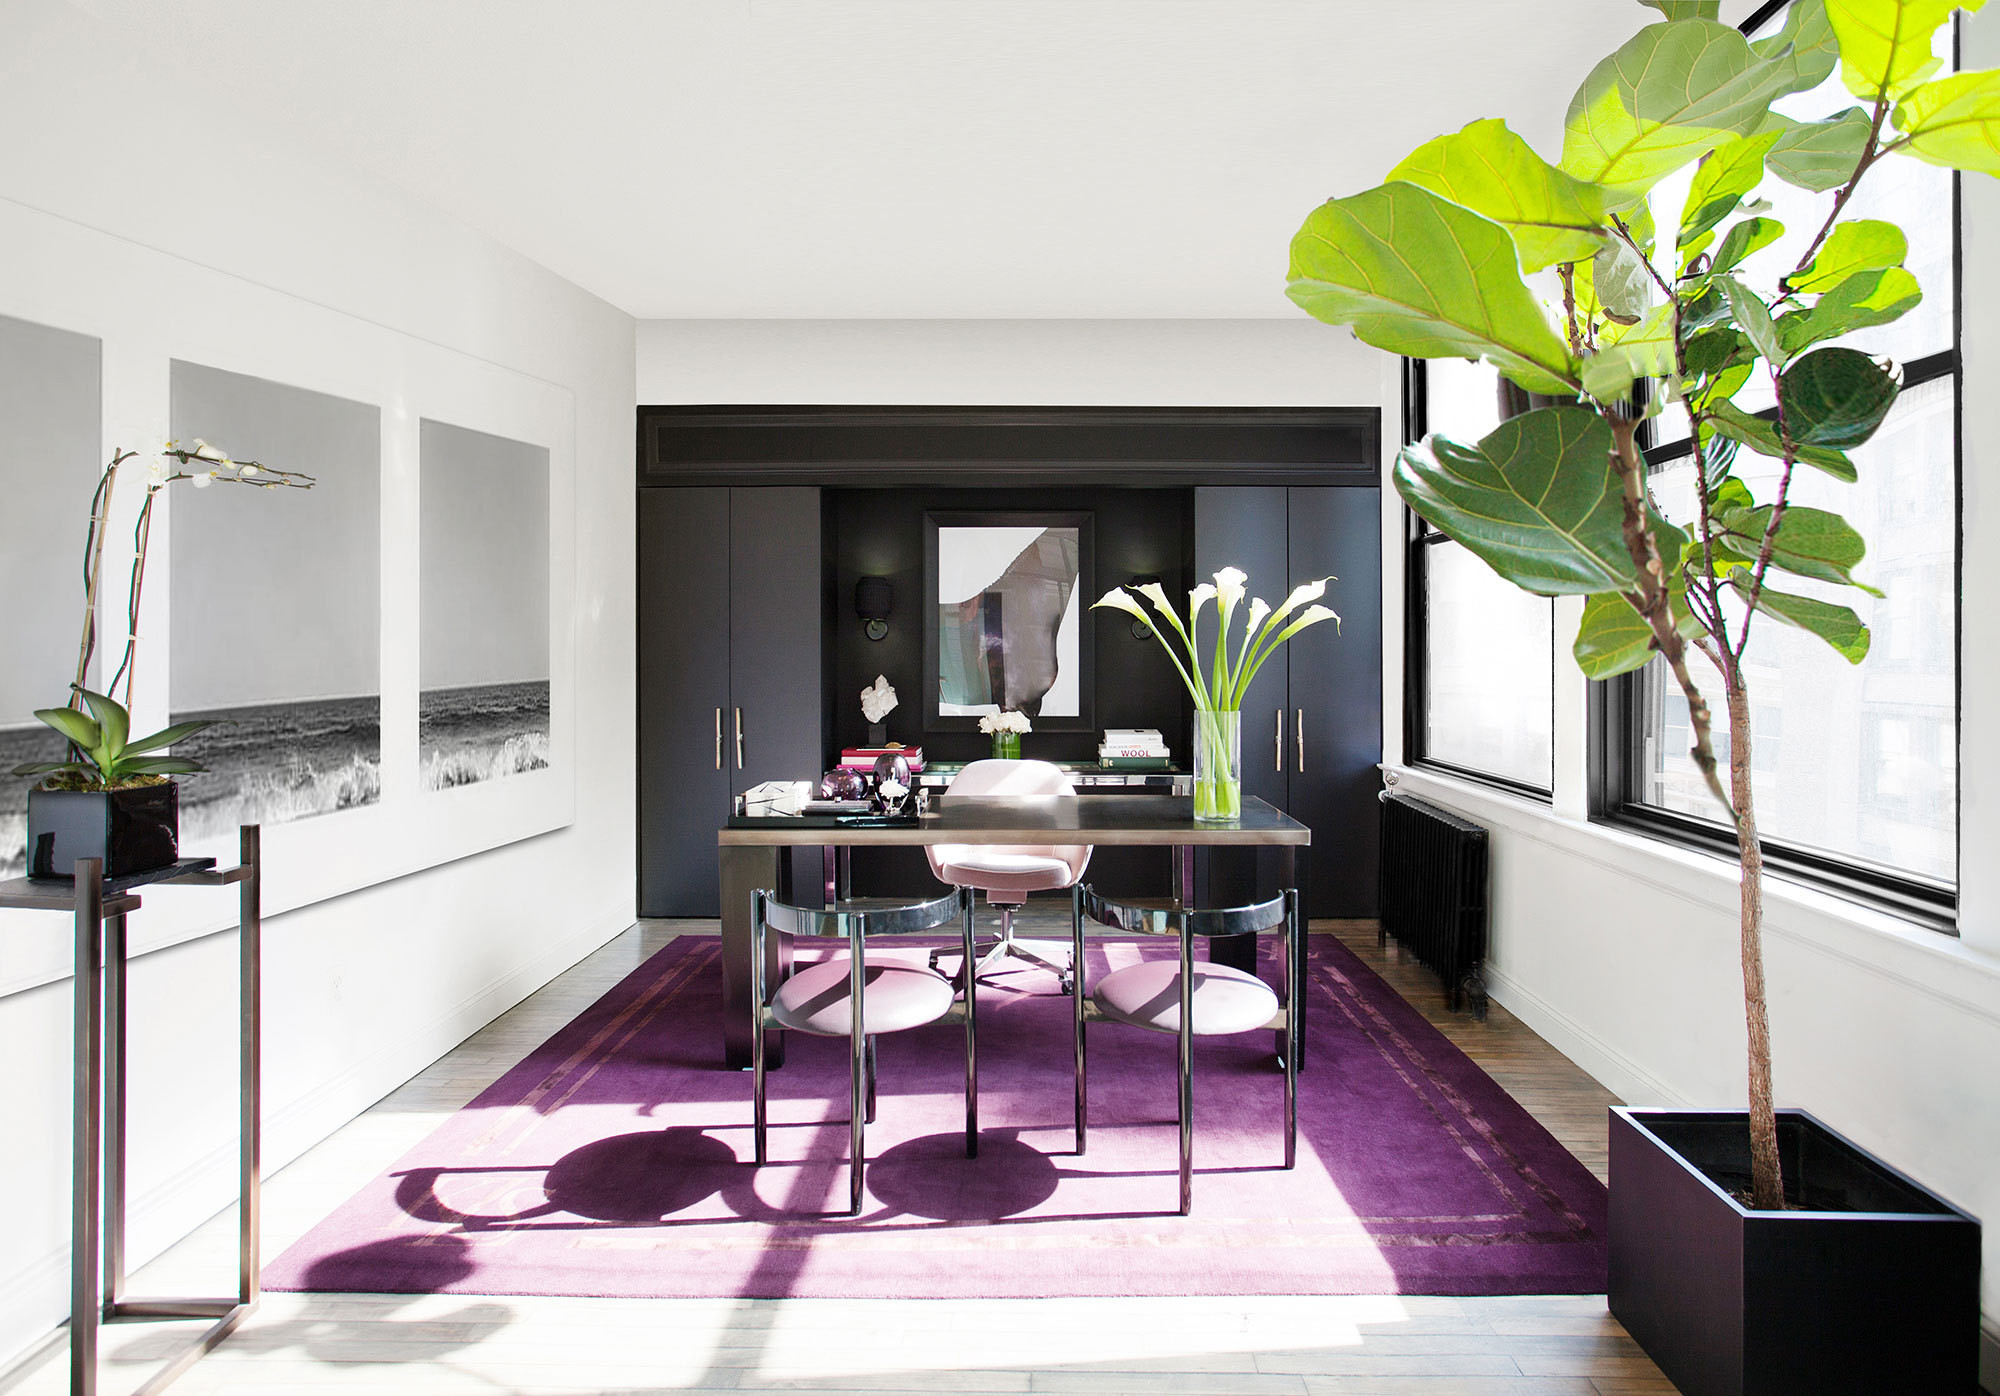 Genial A Rich Purple Rug Covers The Floor Ofu0026nbsp;an Executive Office In Fashion  Designer Kimora